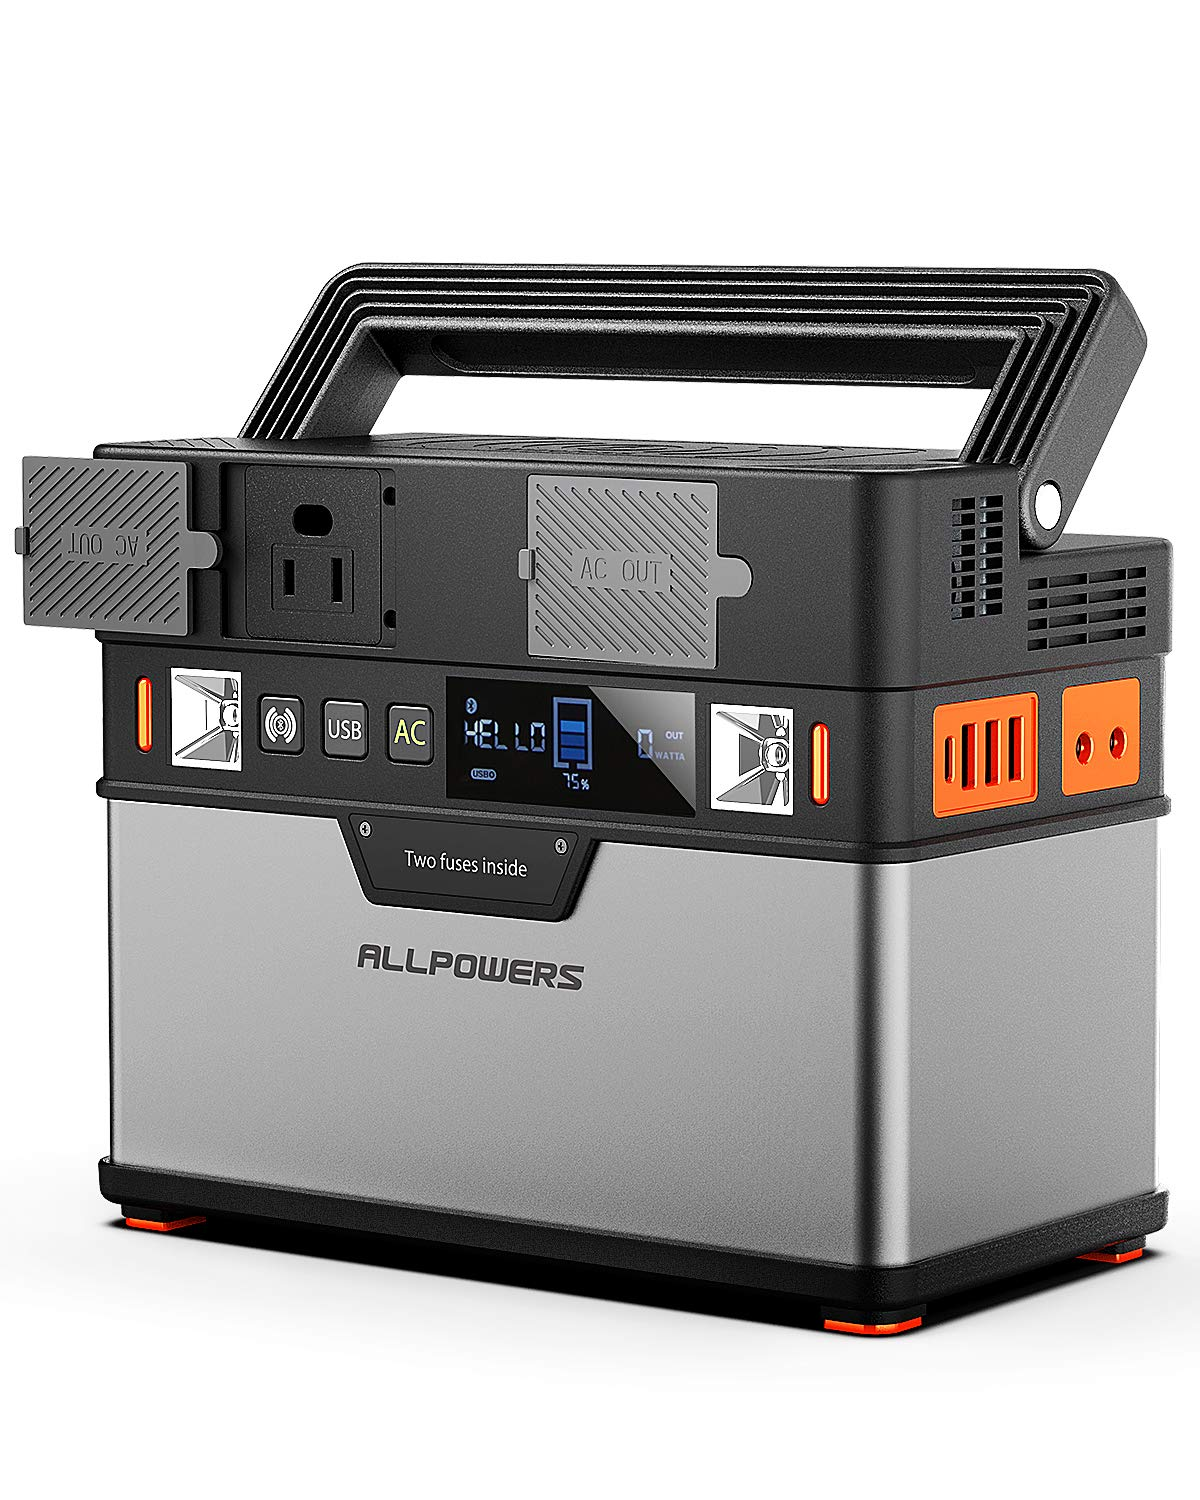 ALLPOWERS Portable Generator 372Wh/105000mAh Power Station Emergency Power Supply with DC/AC Inverter, PD Technology, Wireless Output, Charged by Solar Panel/Wall